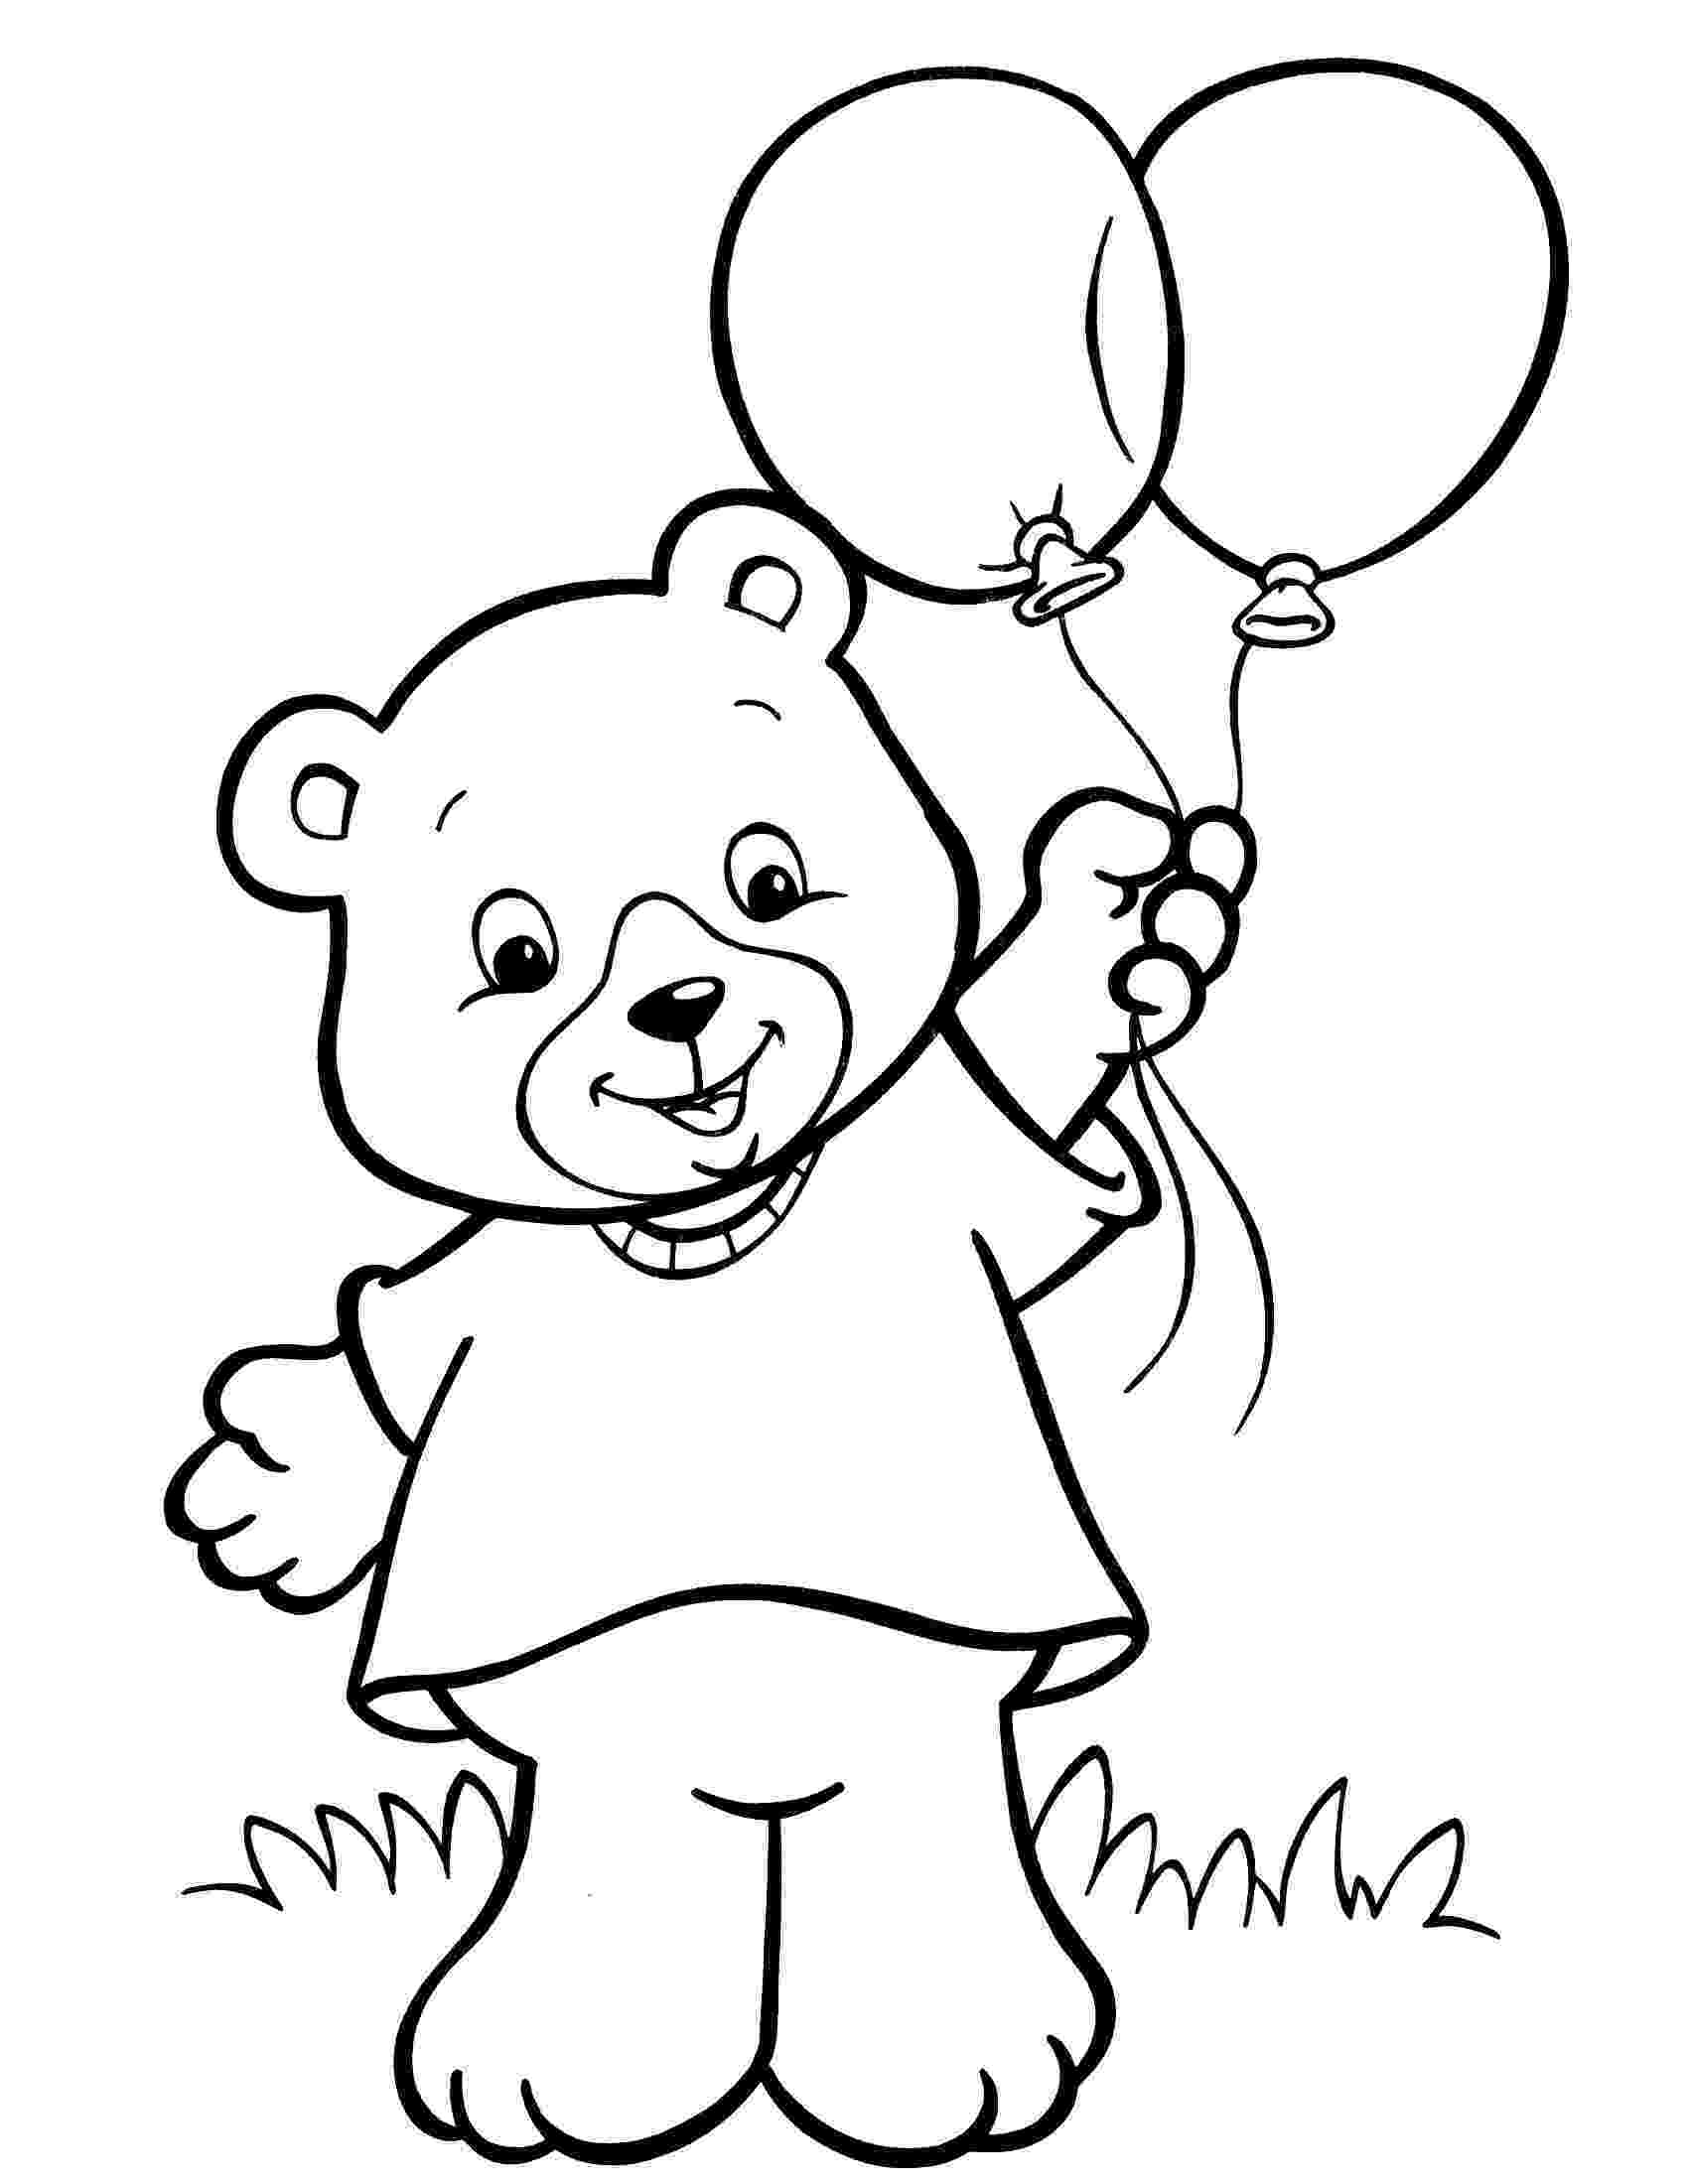 coloring pages for two year olds coloring pages for 10 year olds printable at getcolorings year two for olds coloring pages